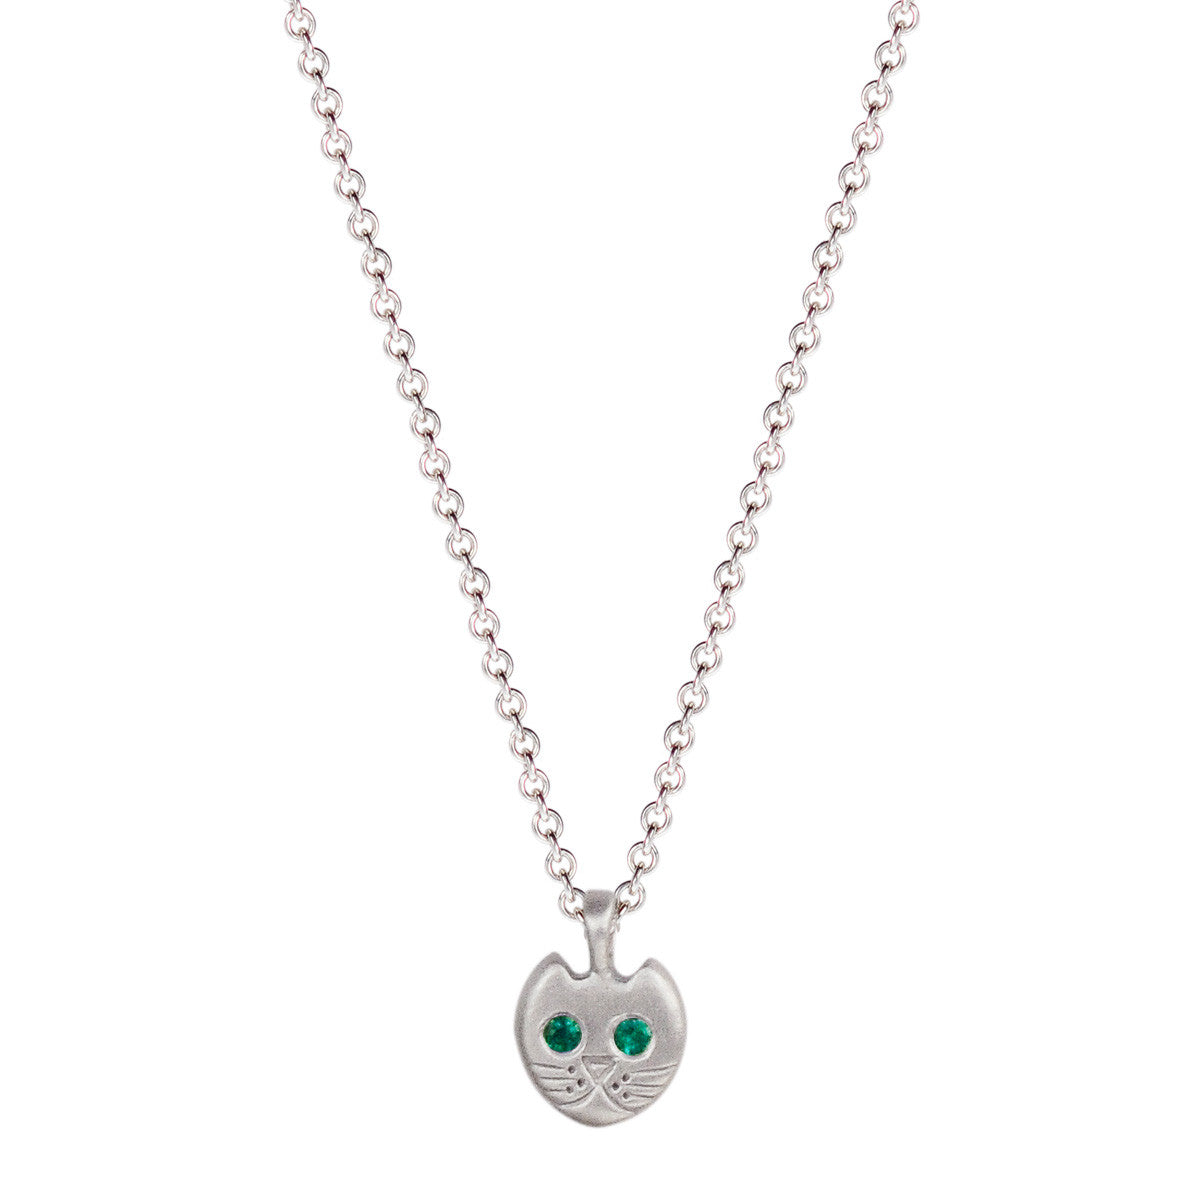 Sterling Silver Tiny Kitten Pendant with Emerald Eyes